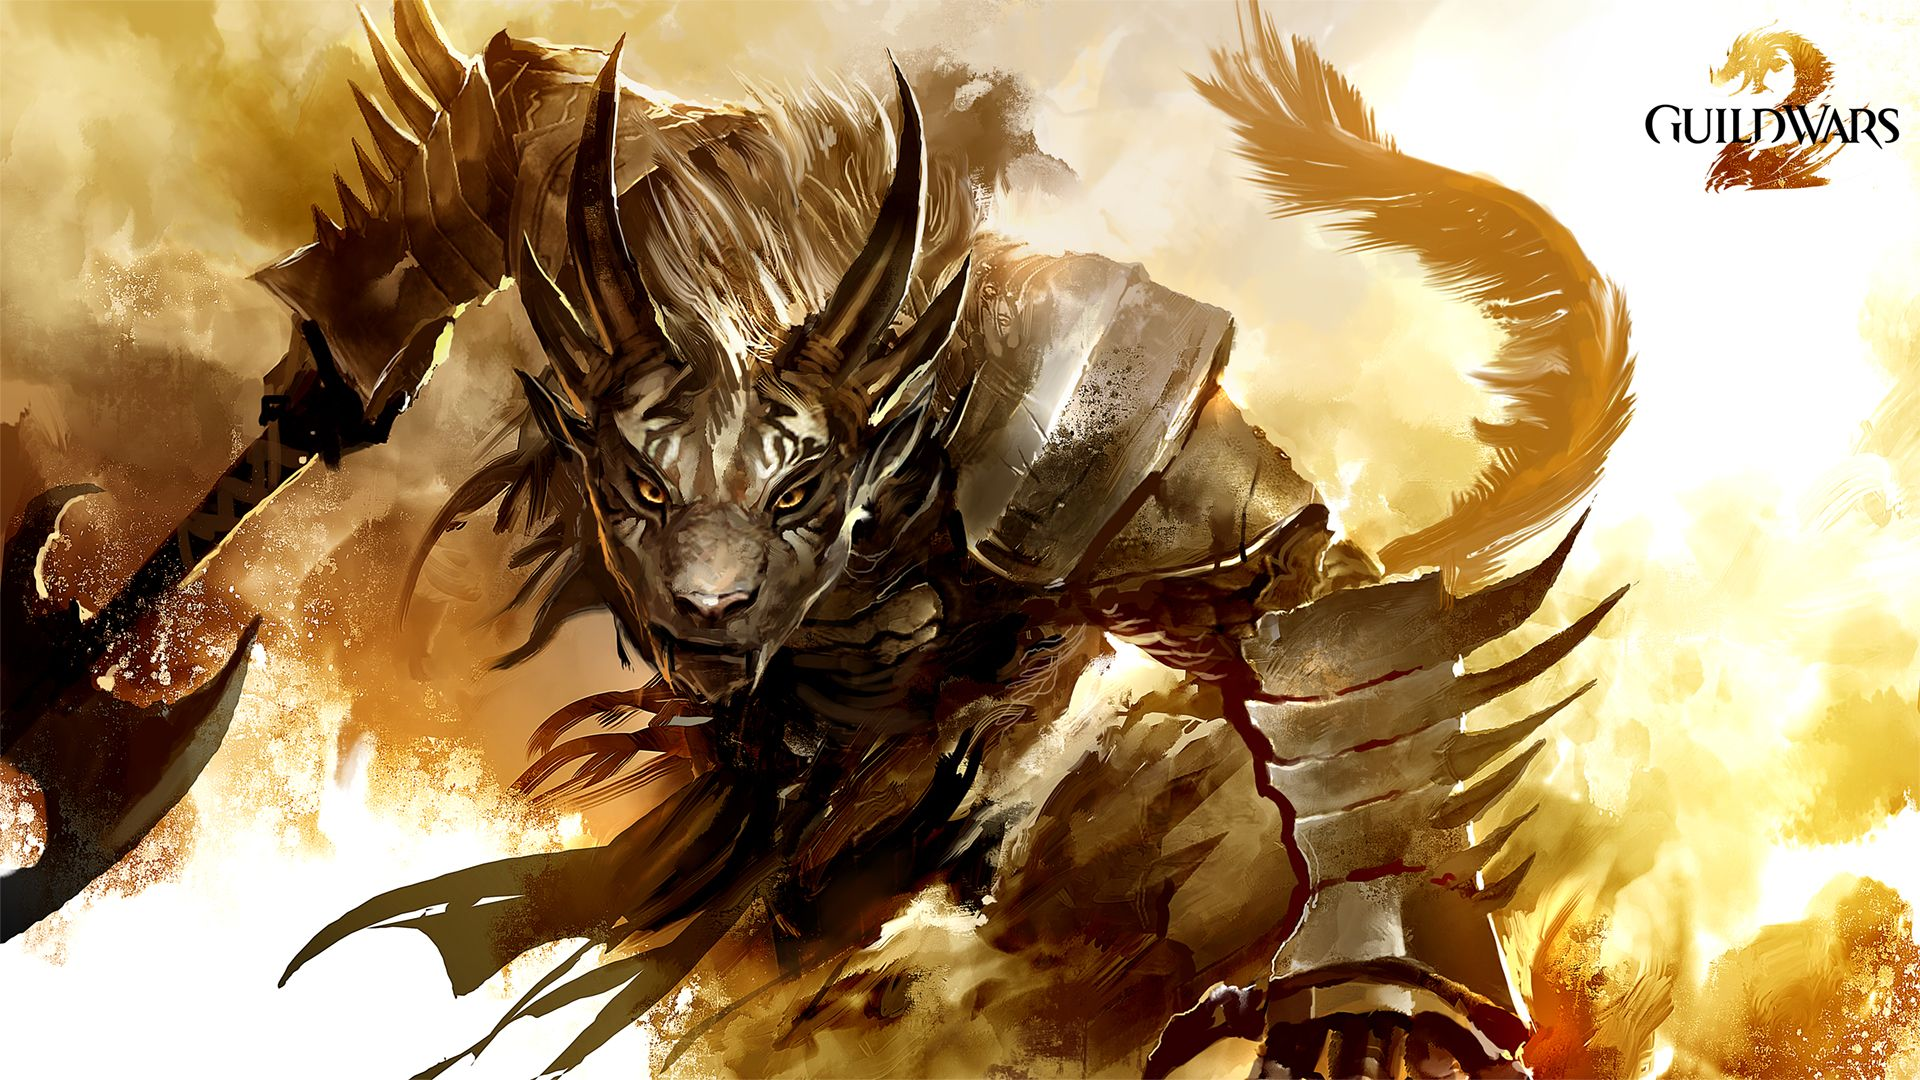 Guild Wars 2 Badass Charr Warrior 1920x1080 Need Iphone 6s